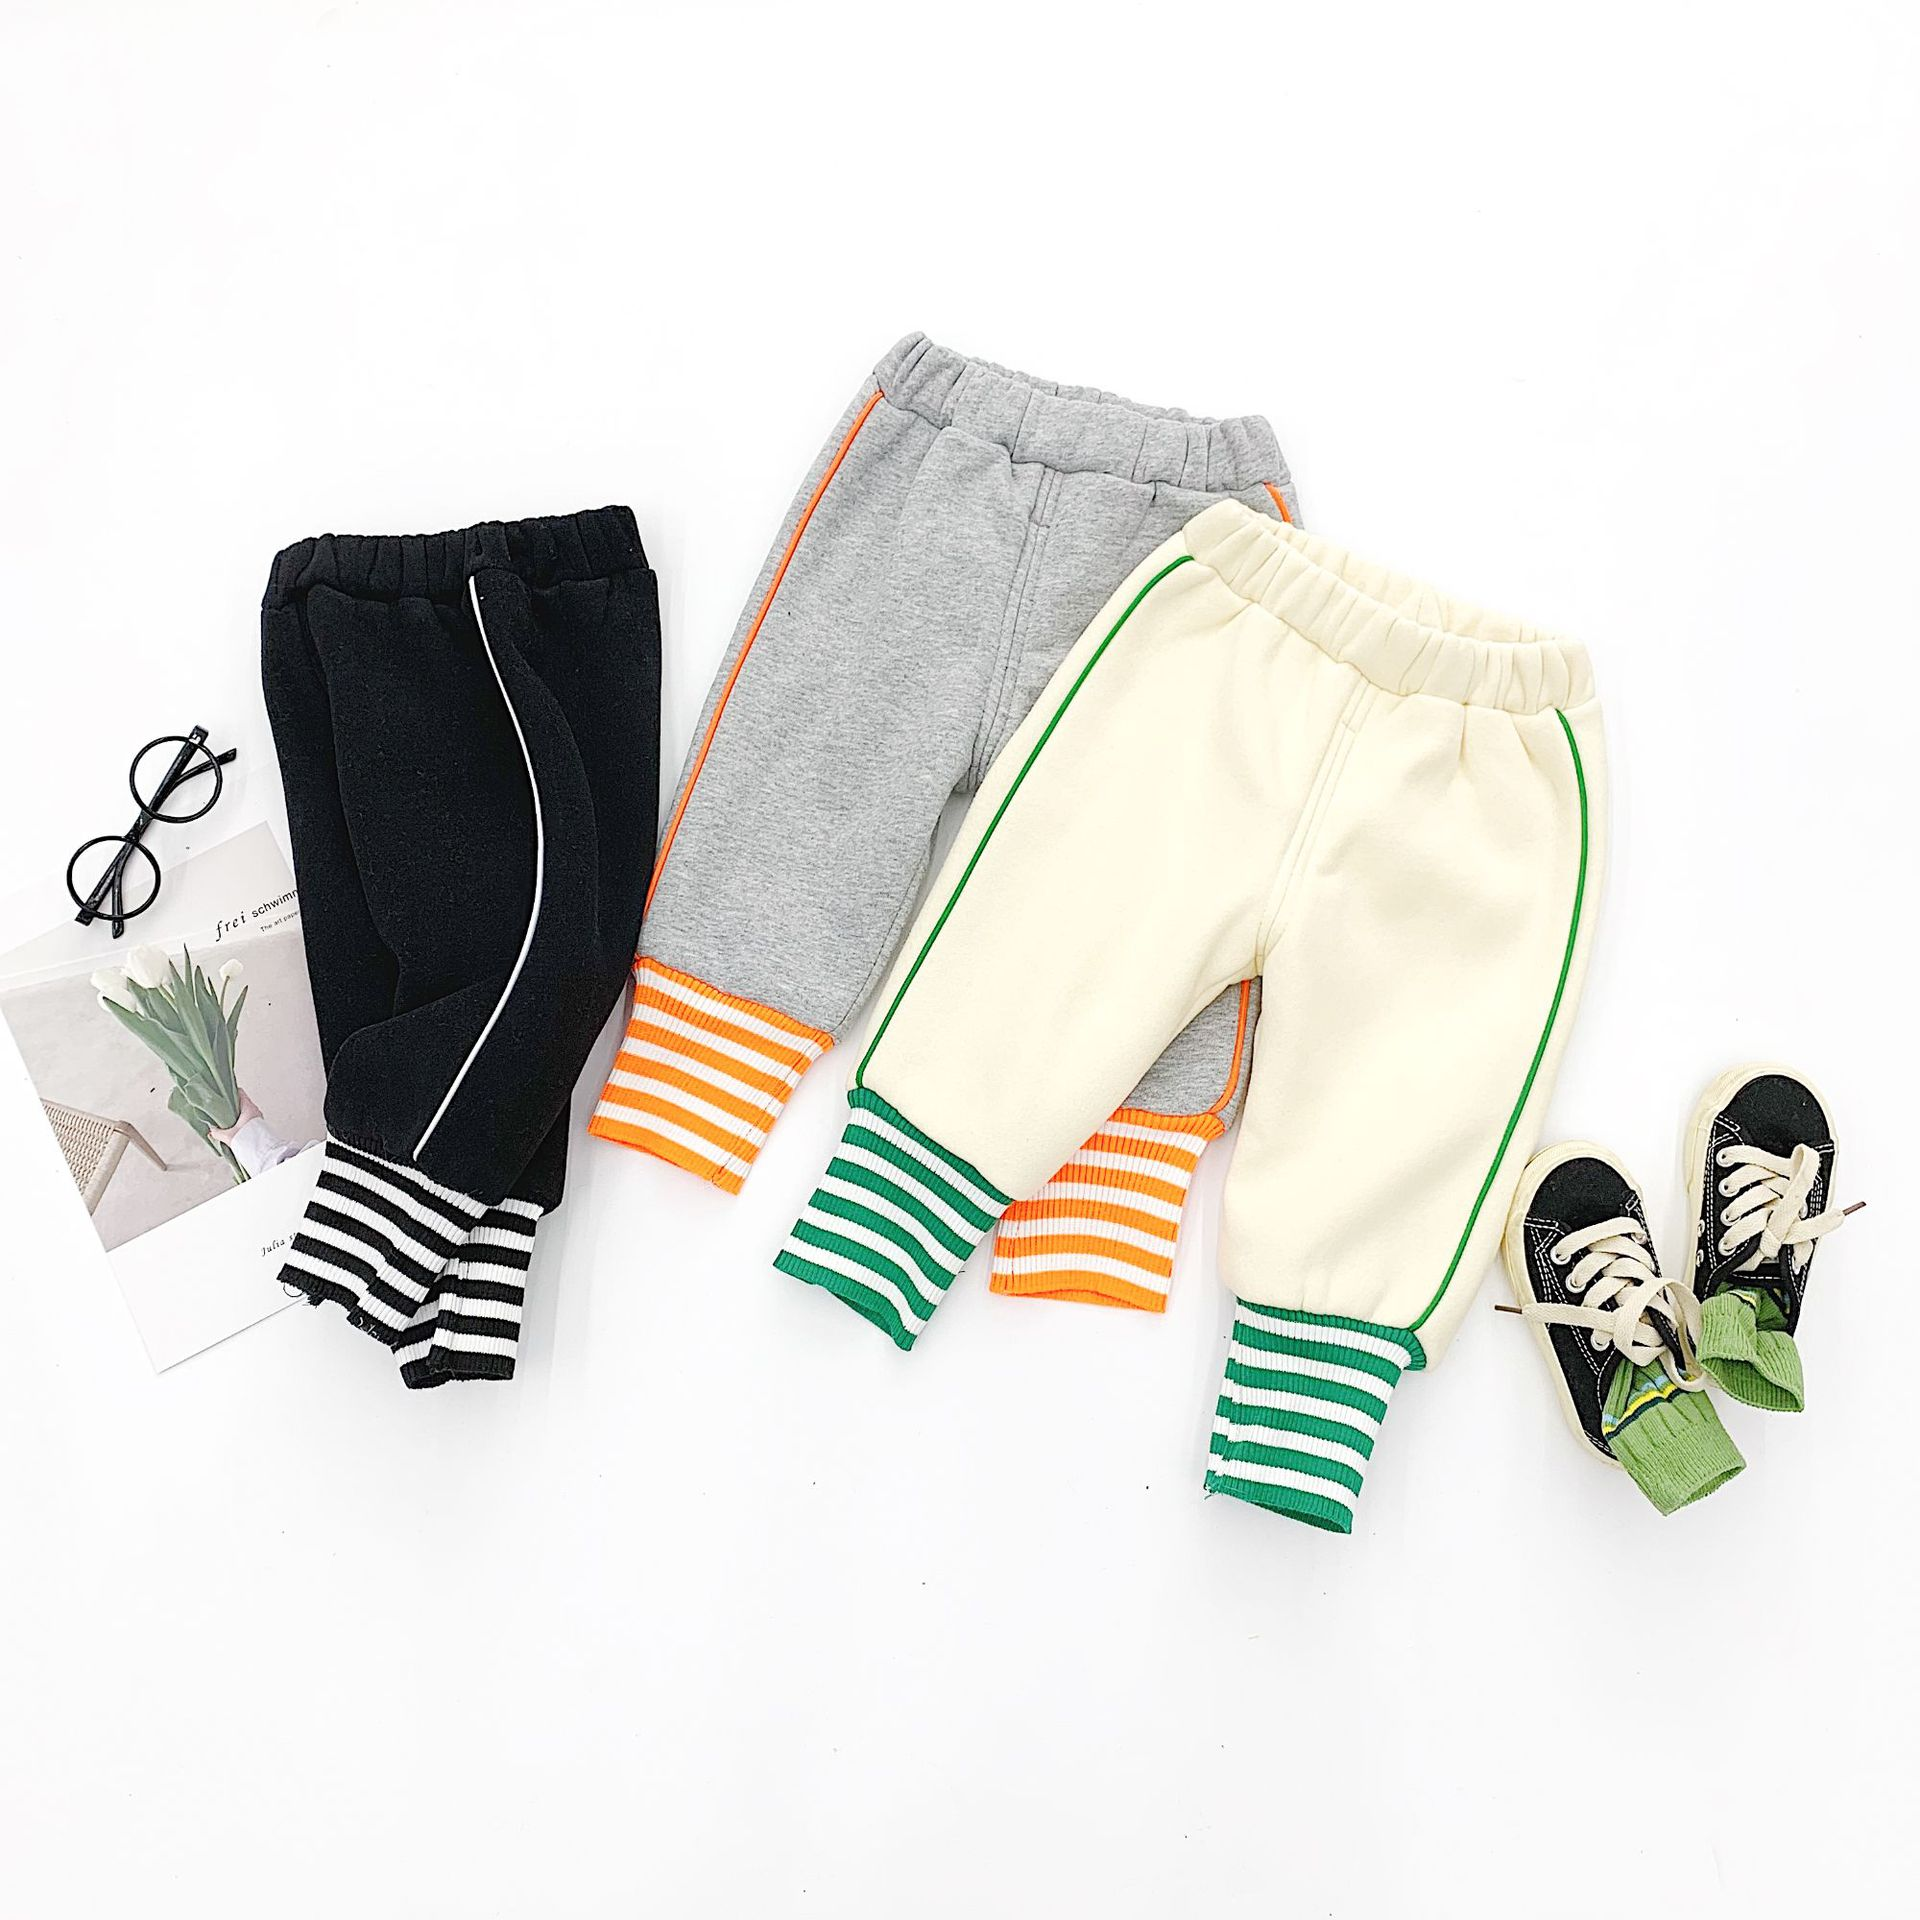 Begall Baby Baby Bottoms 2019 New Arrive Fashion Sports Pants for Children Winter Casual Trouses Print Striped Winter for Kids|Pants| |  - title=